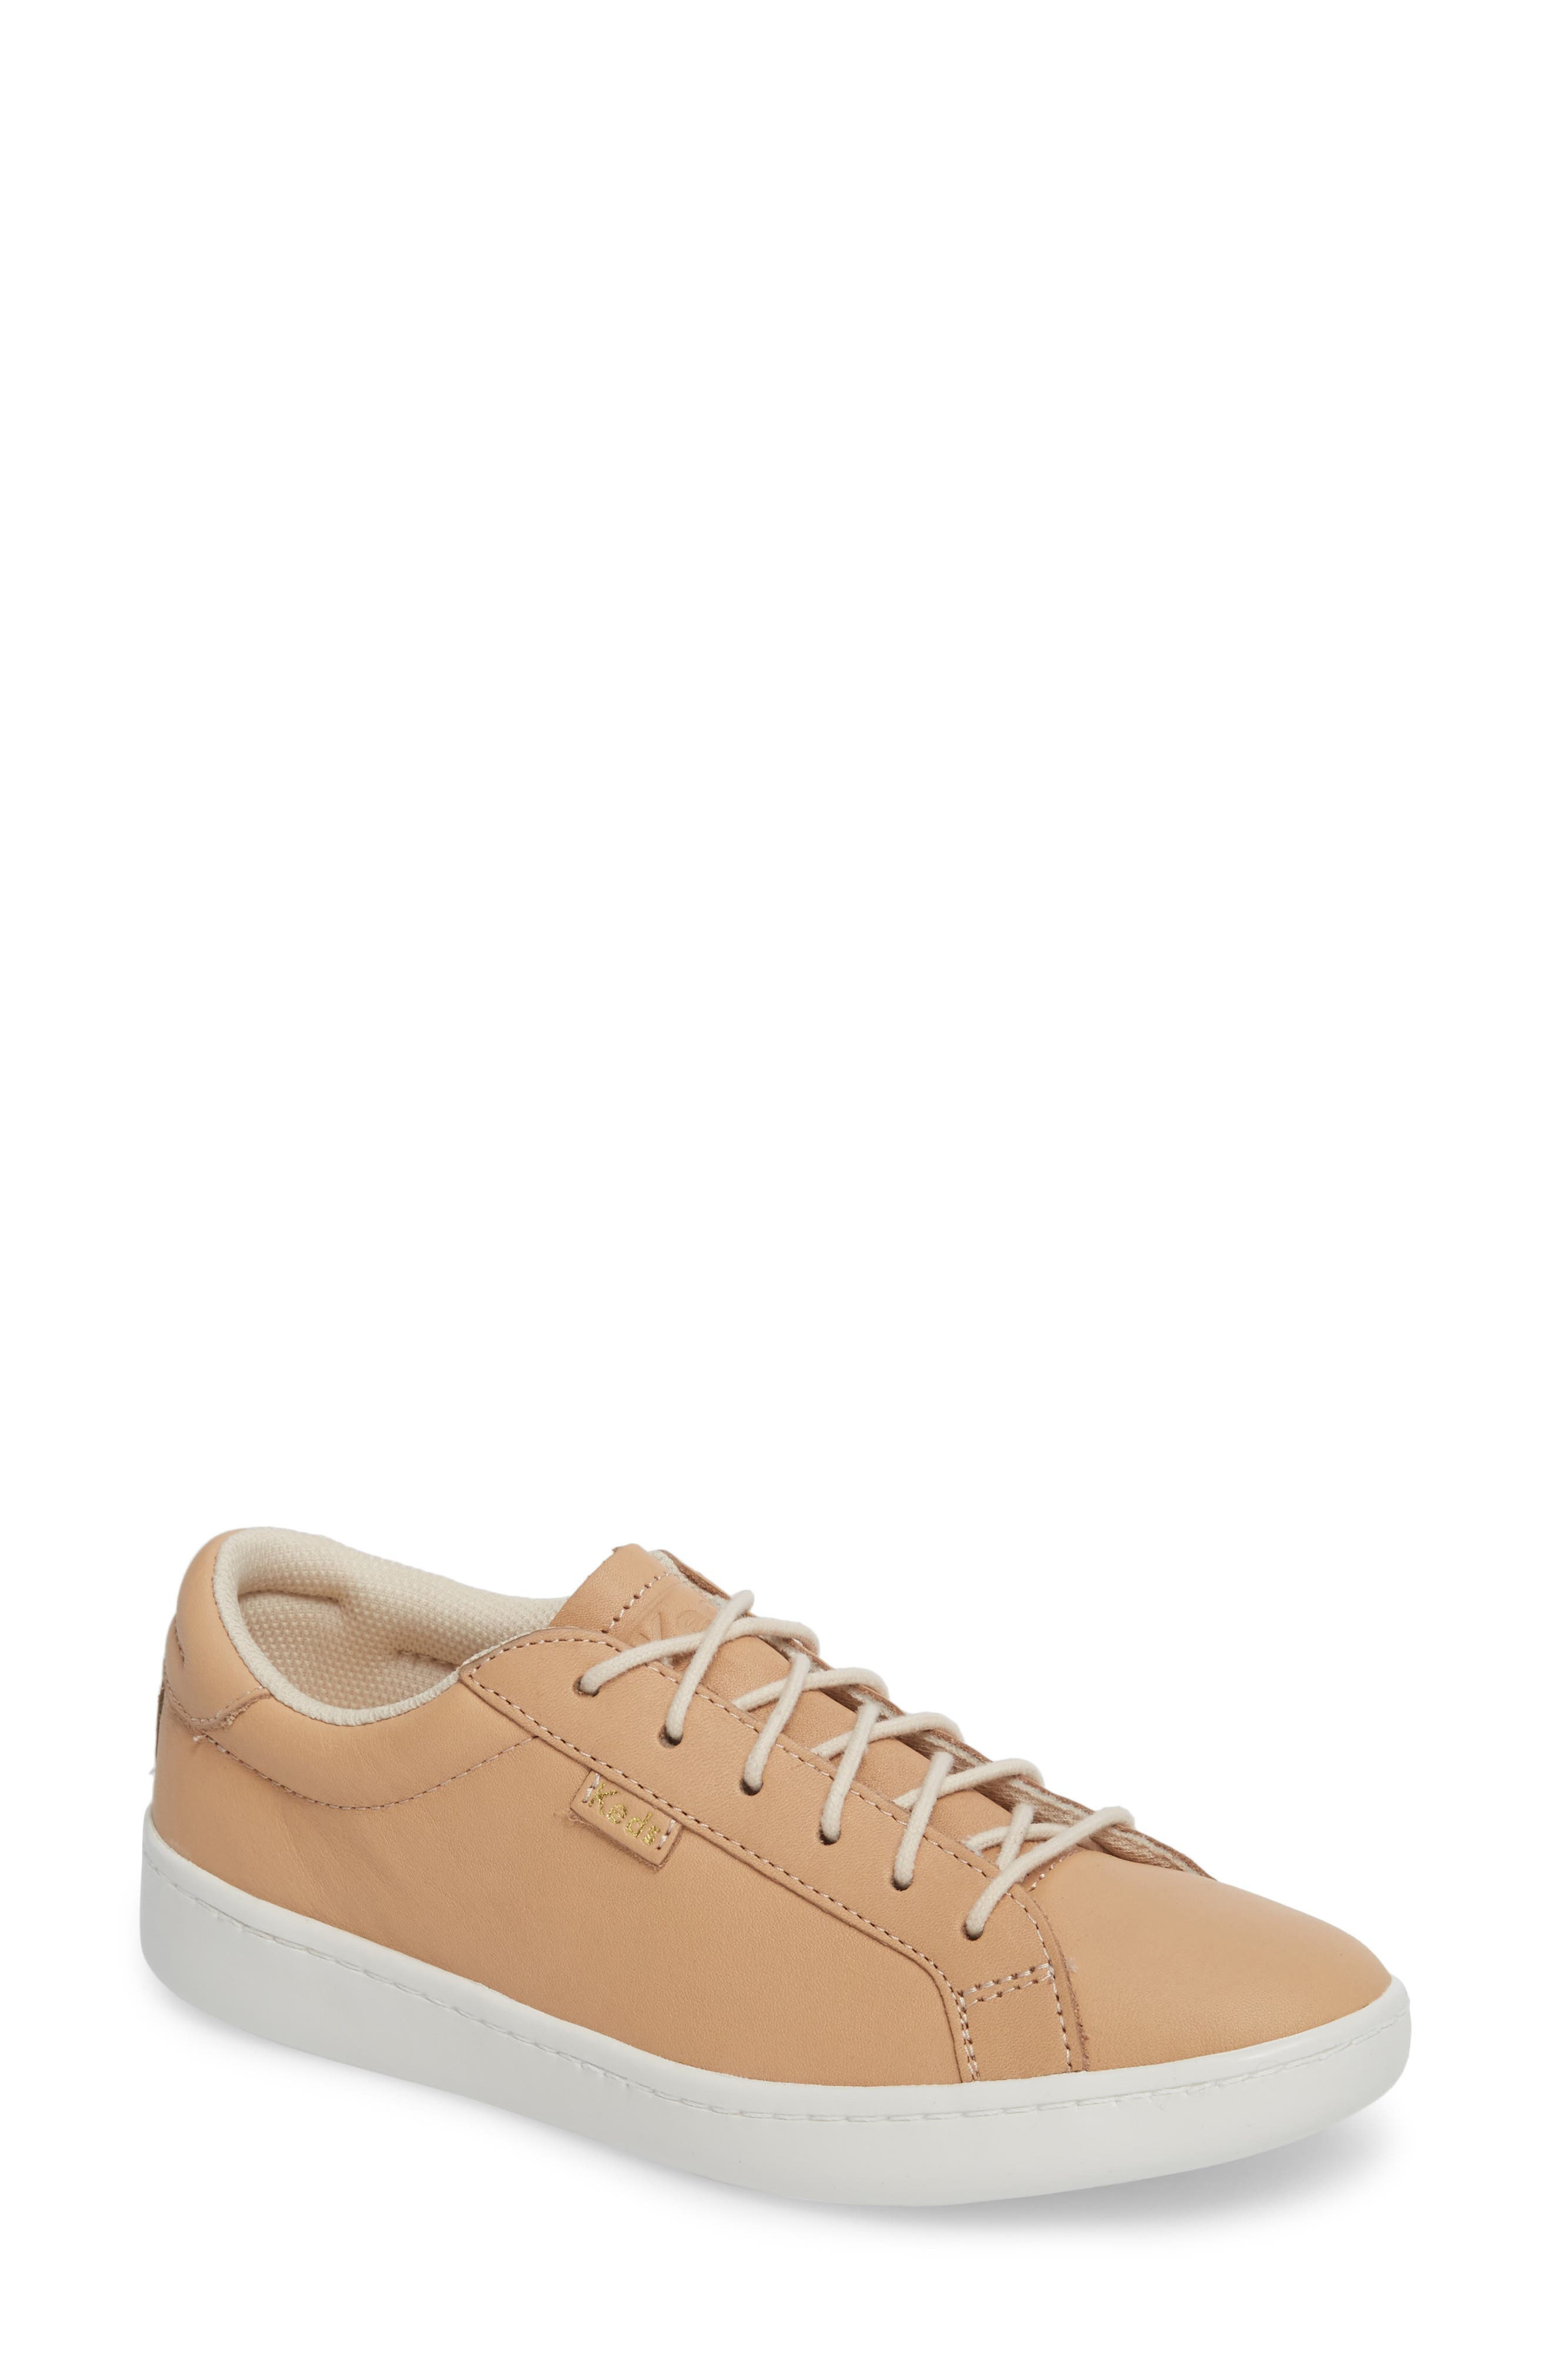 Ace Leather Sneaker,                         Main,                         color, Natural